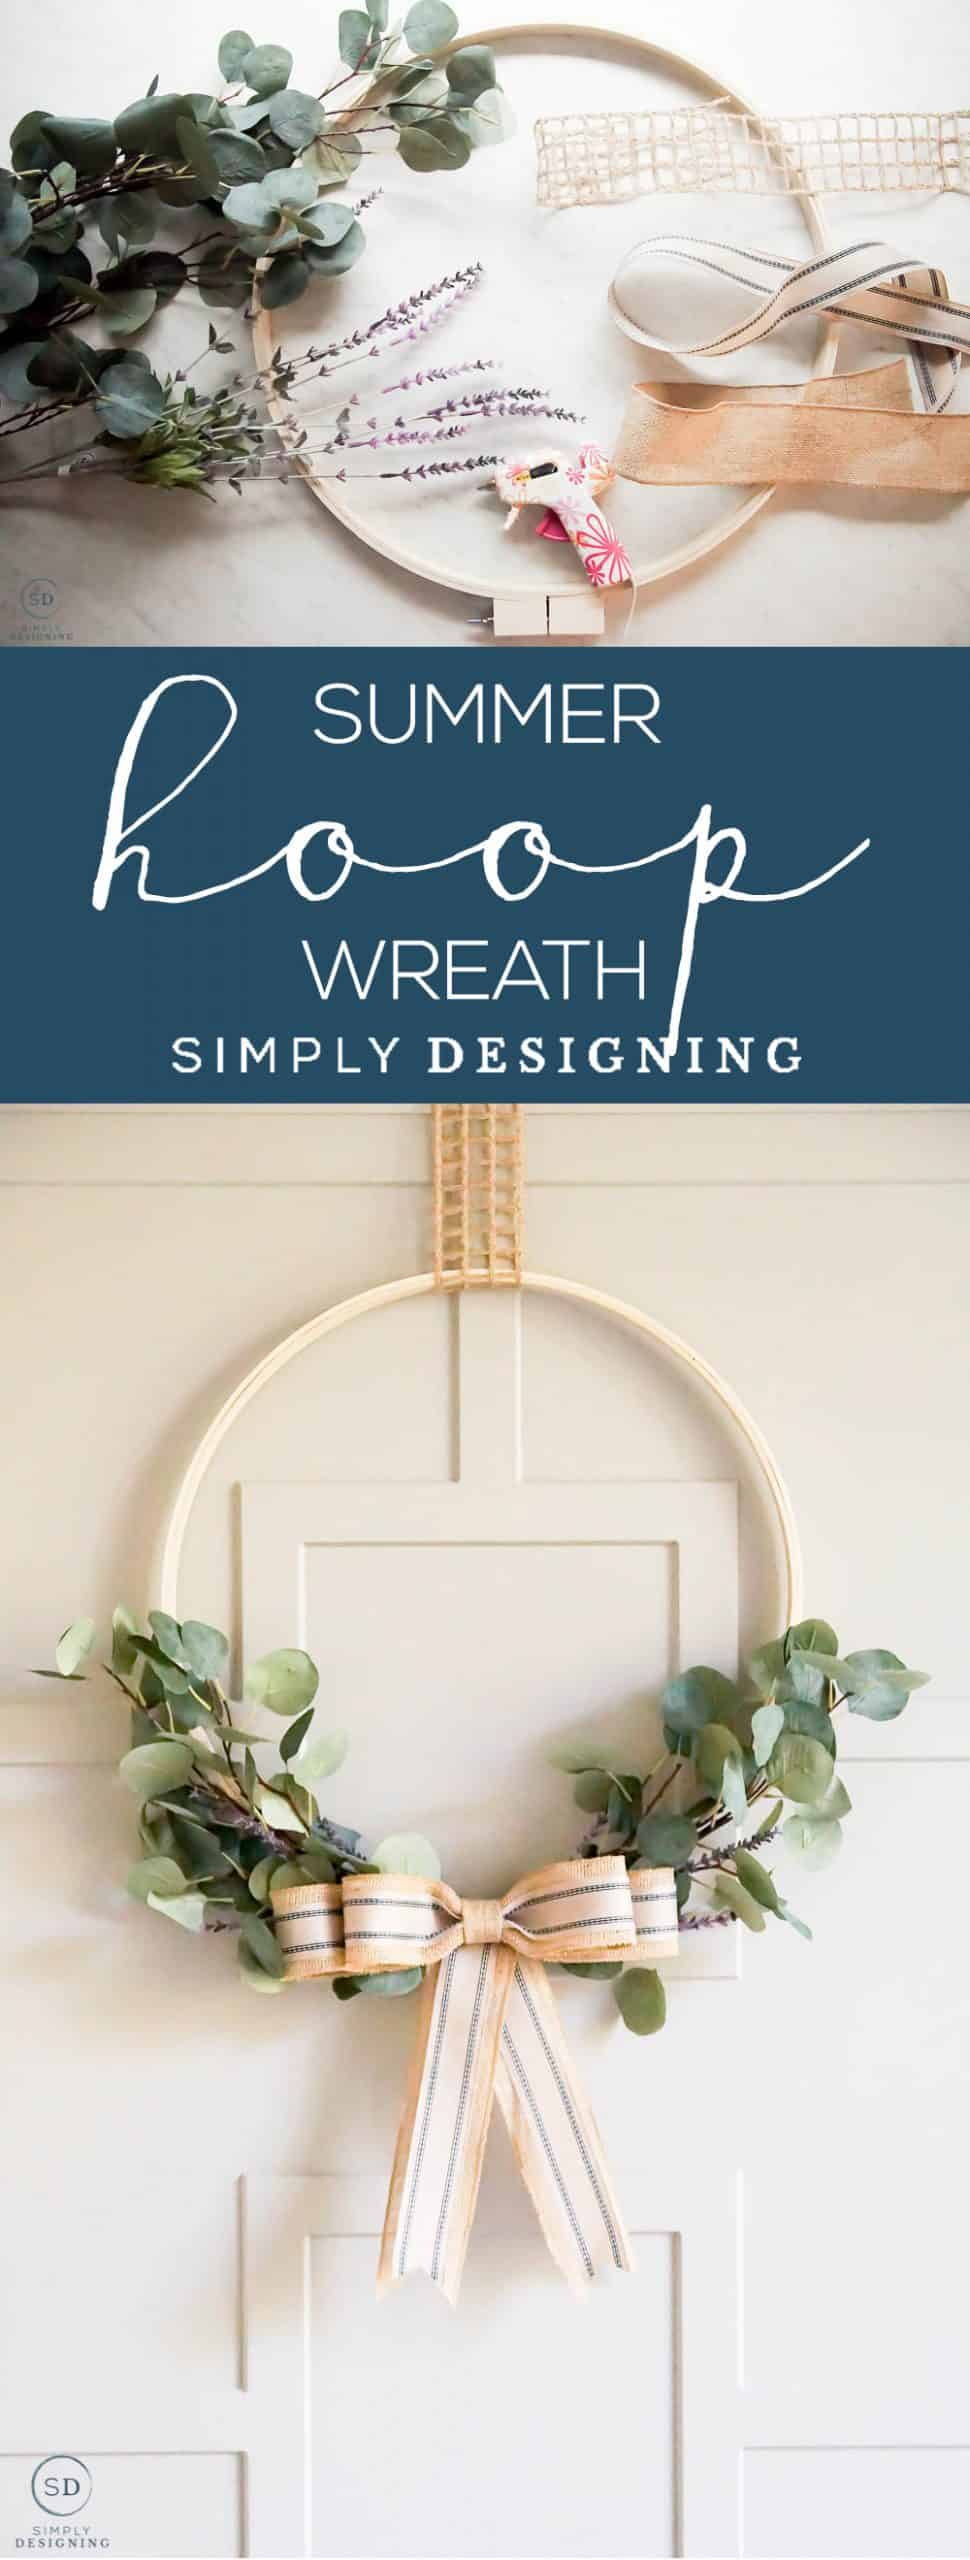 Summer Hoop Wreath - This beautiful Summer Hoop Wreath is a simple homemade wreath that you can easily make yourself with only a few supplies and not a lot of time